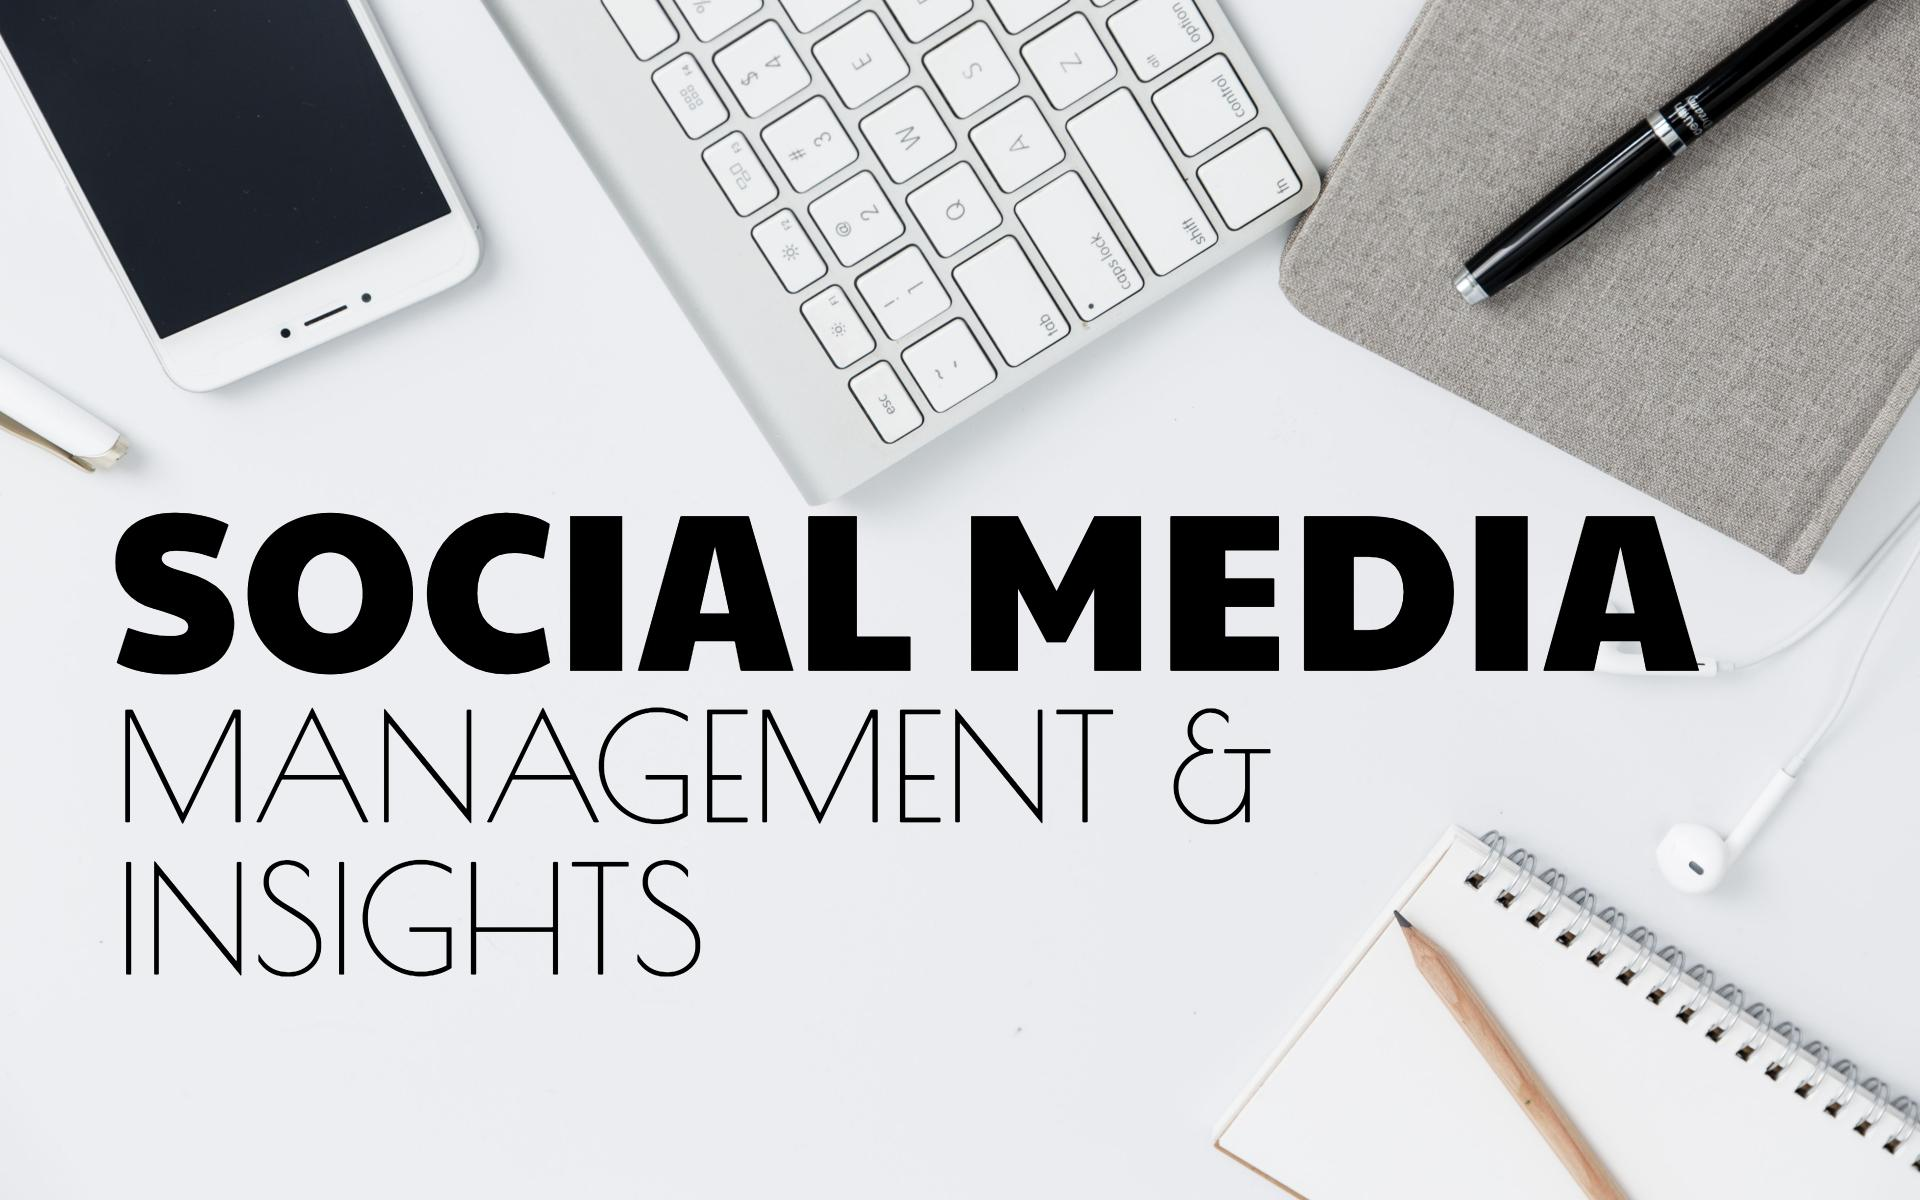 social media management and insights